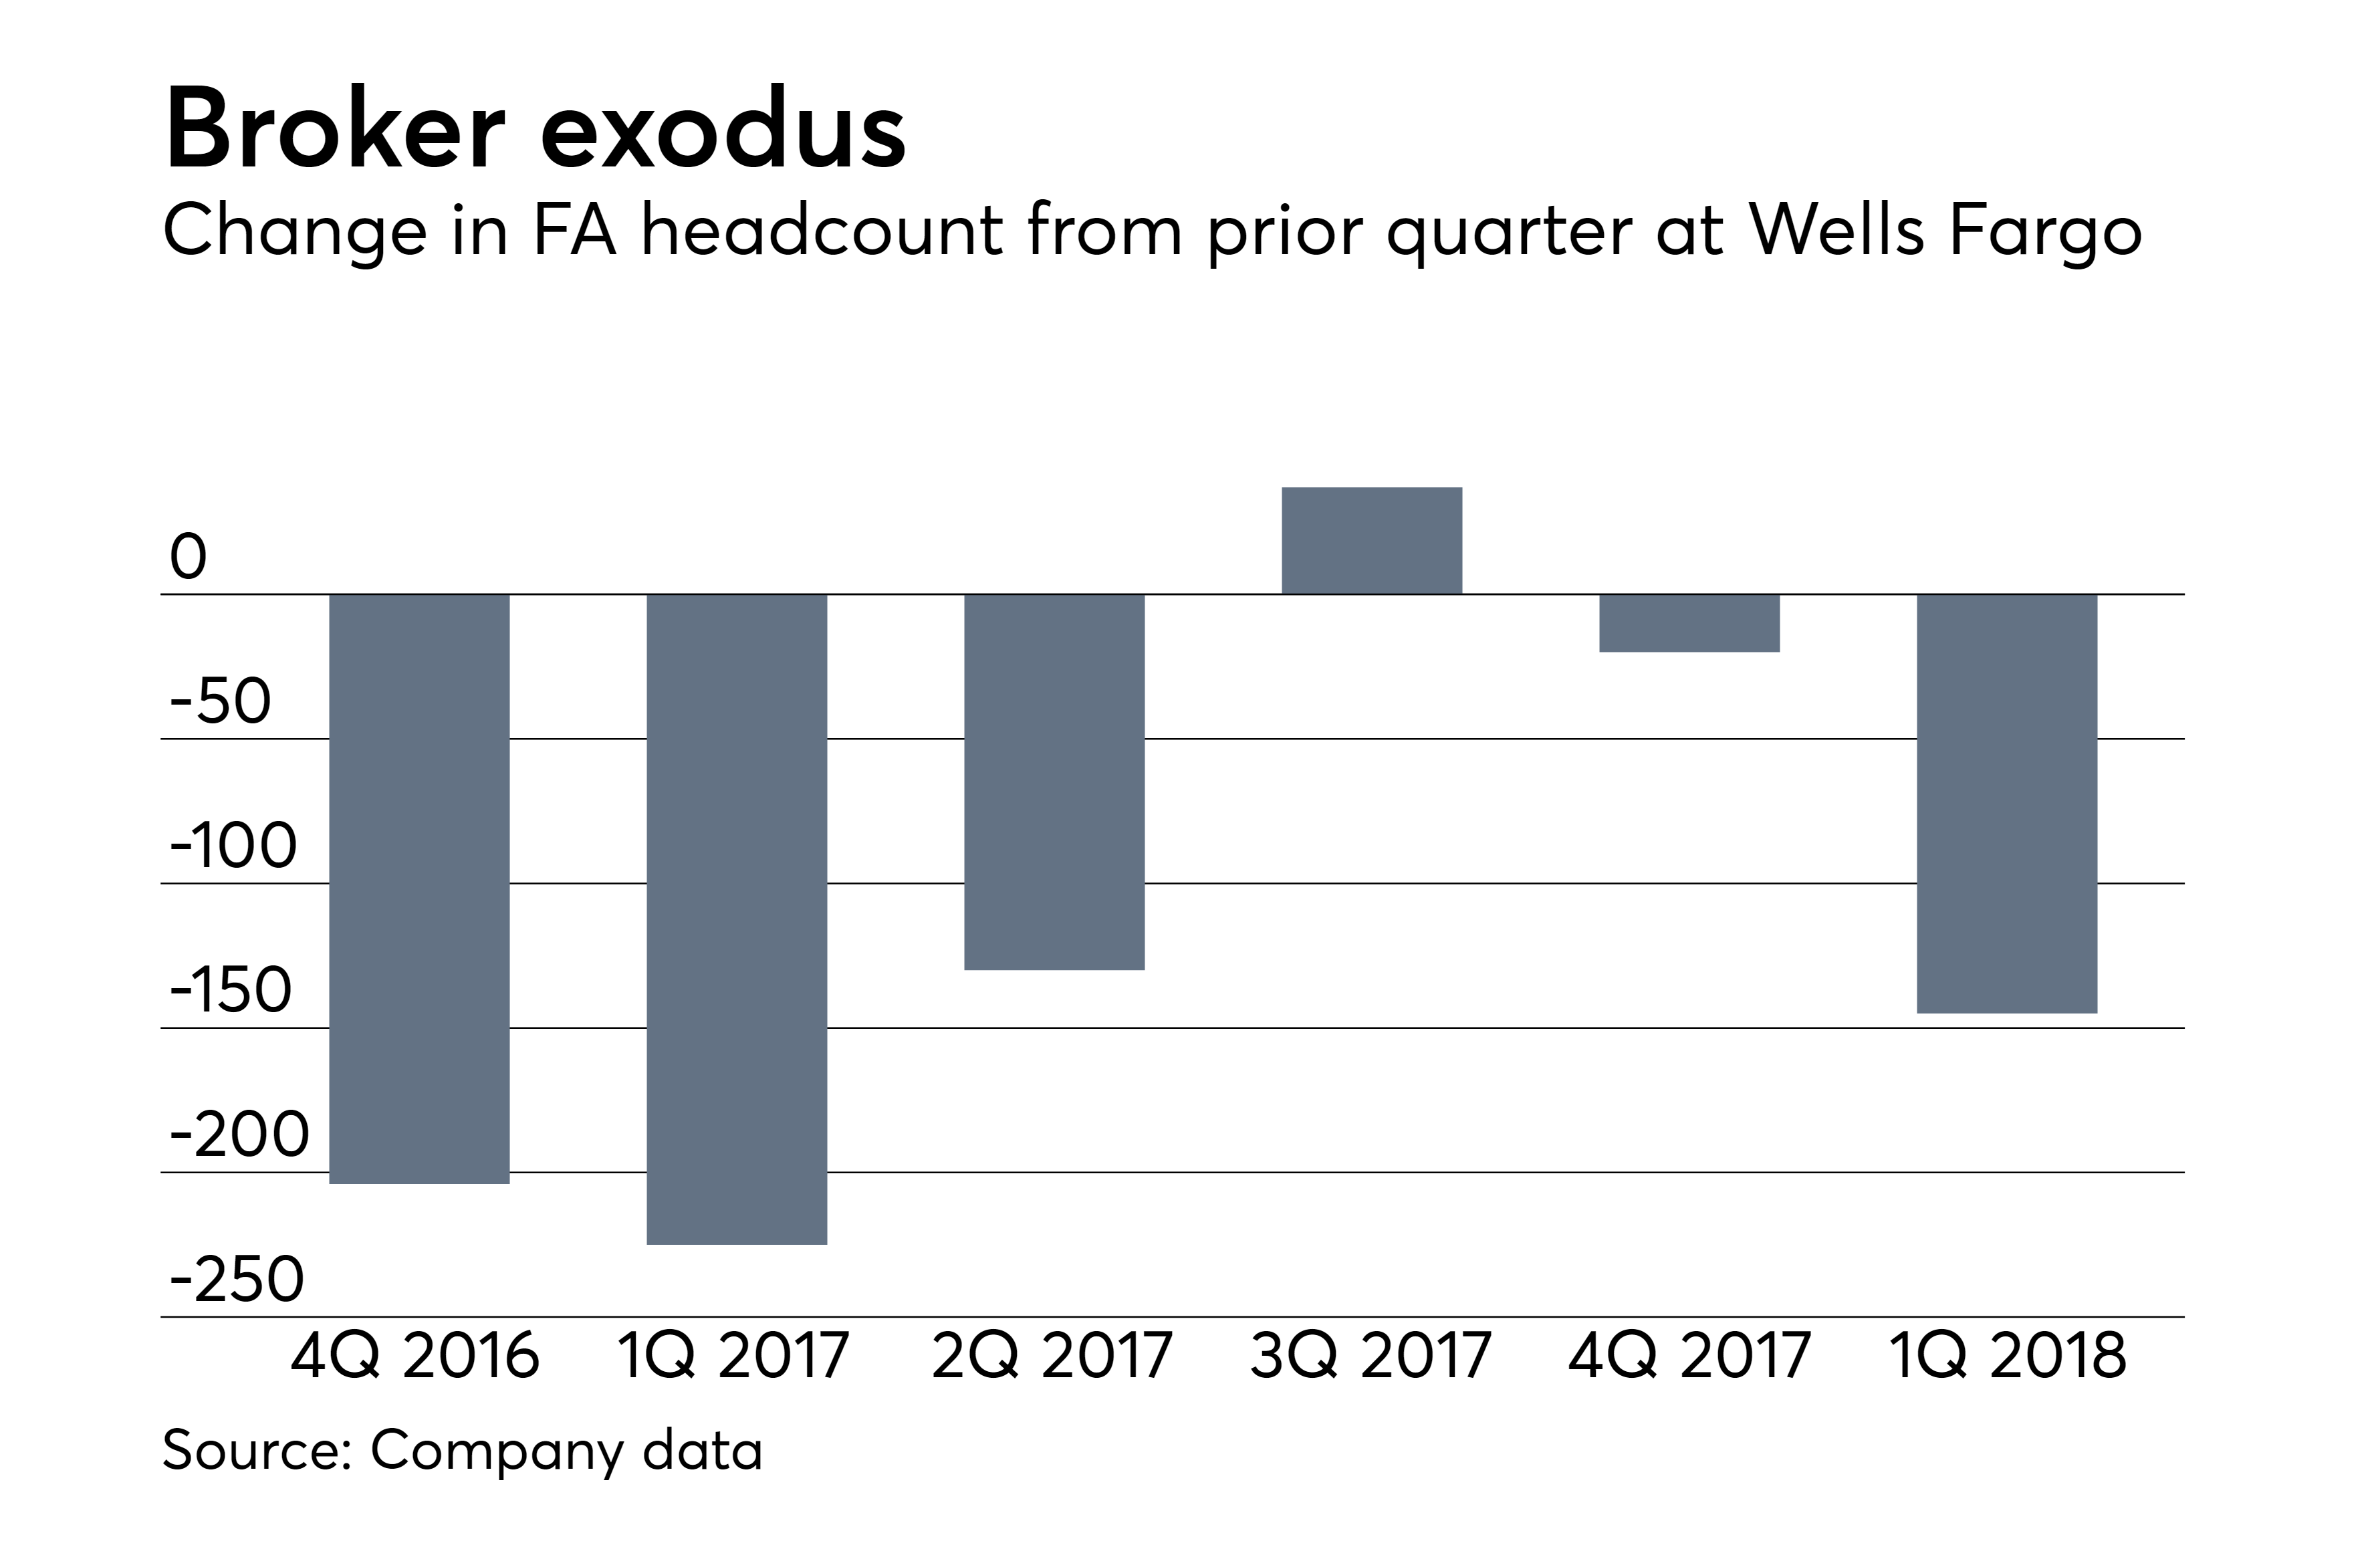 https://assets.sourcemedia.com/ea/94/5f2e9c5147d882d6054290dd02ac/ows-04-30-2018-wells-fargo-change-in-advisor-headcount.png